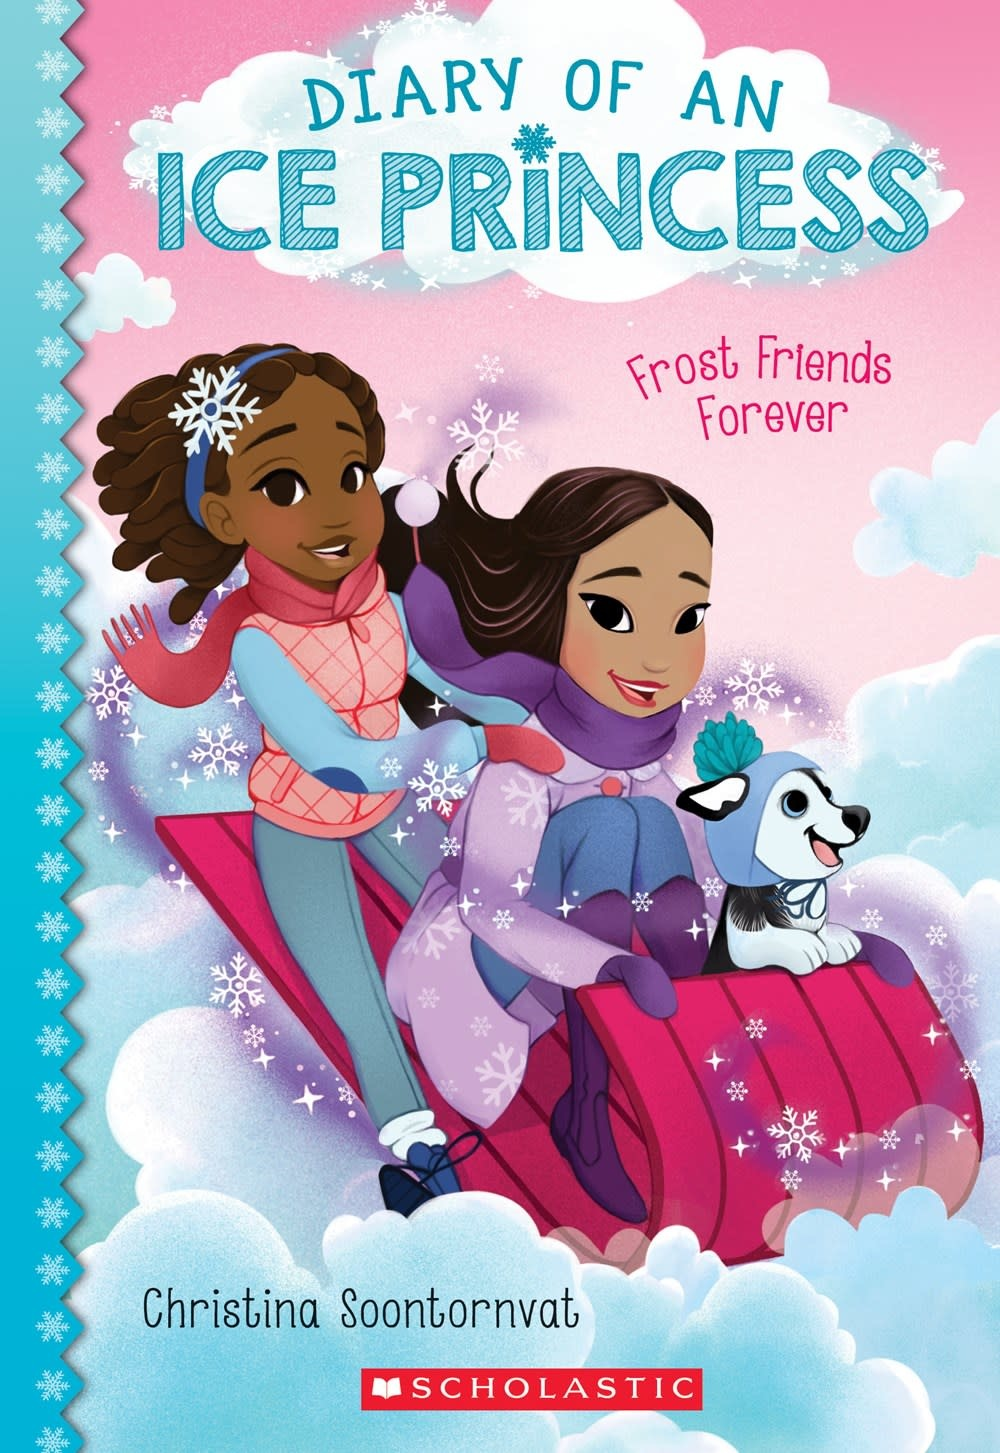 Scholastic Paperbacks Diary of an Ice Princess 02 Frost Friends Forever